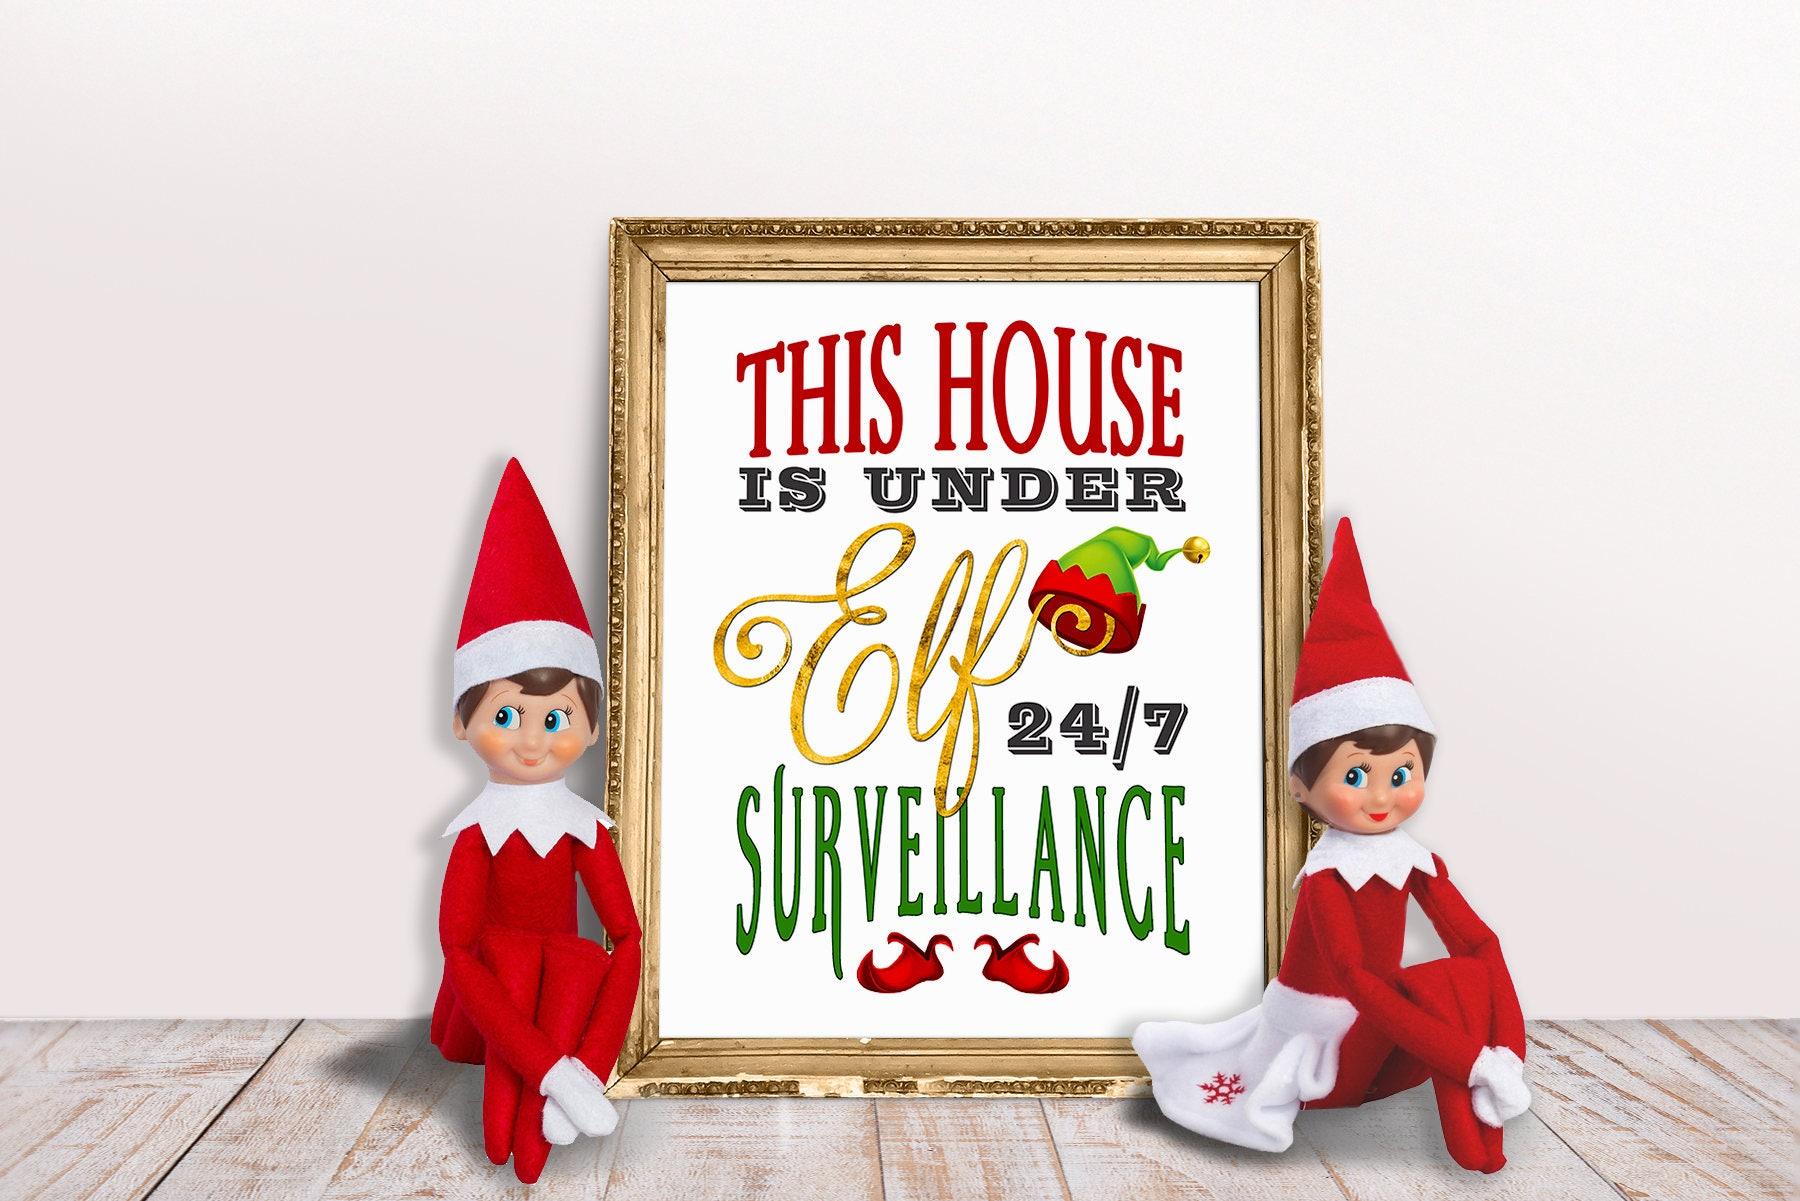 Christmas Grinch Quote 8 X 10 Digital Print Instant By: Elf Printable This House Is Under Elf 24 / 7 Surveillance